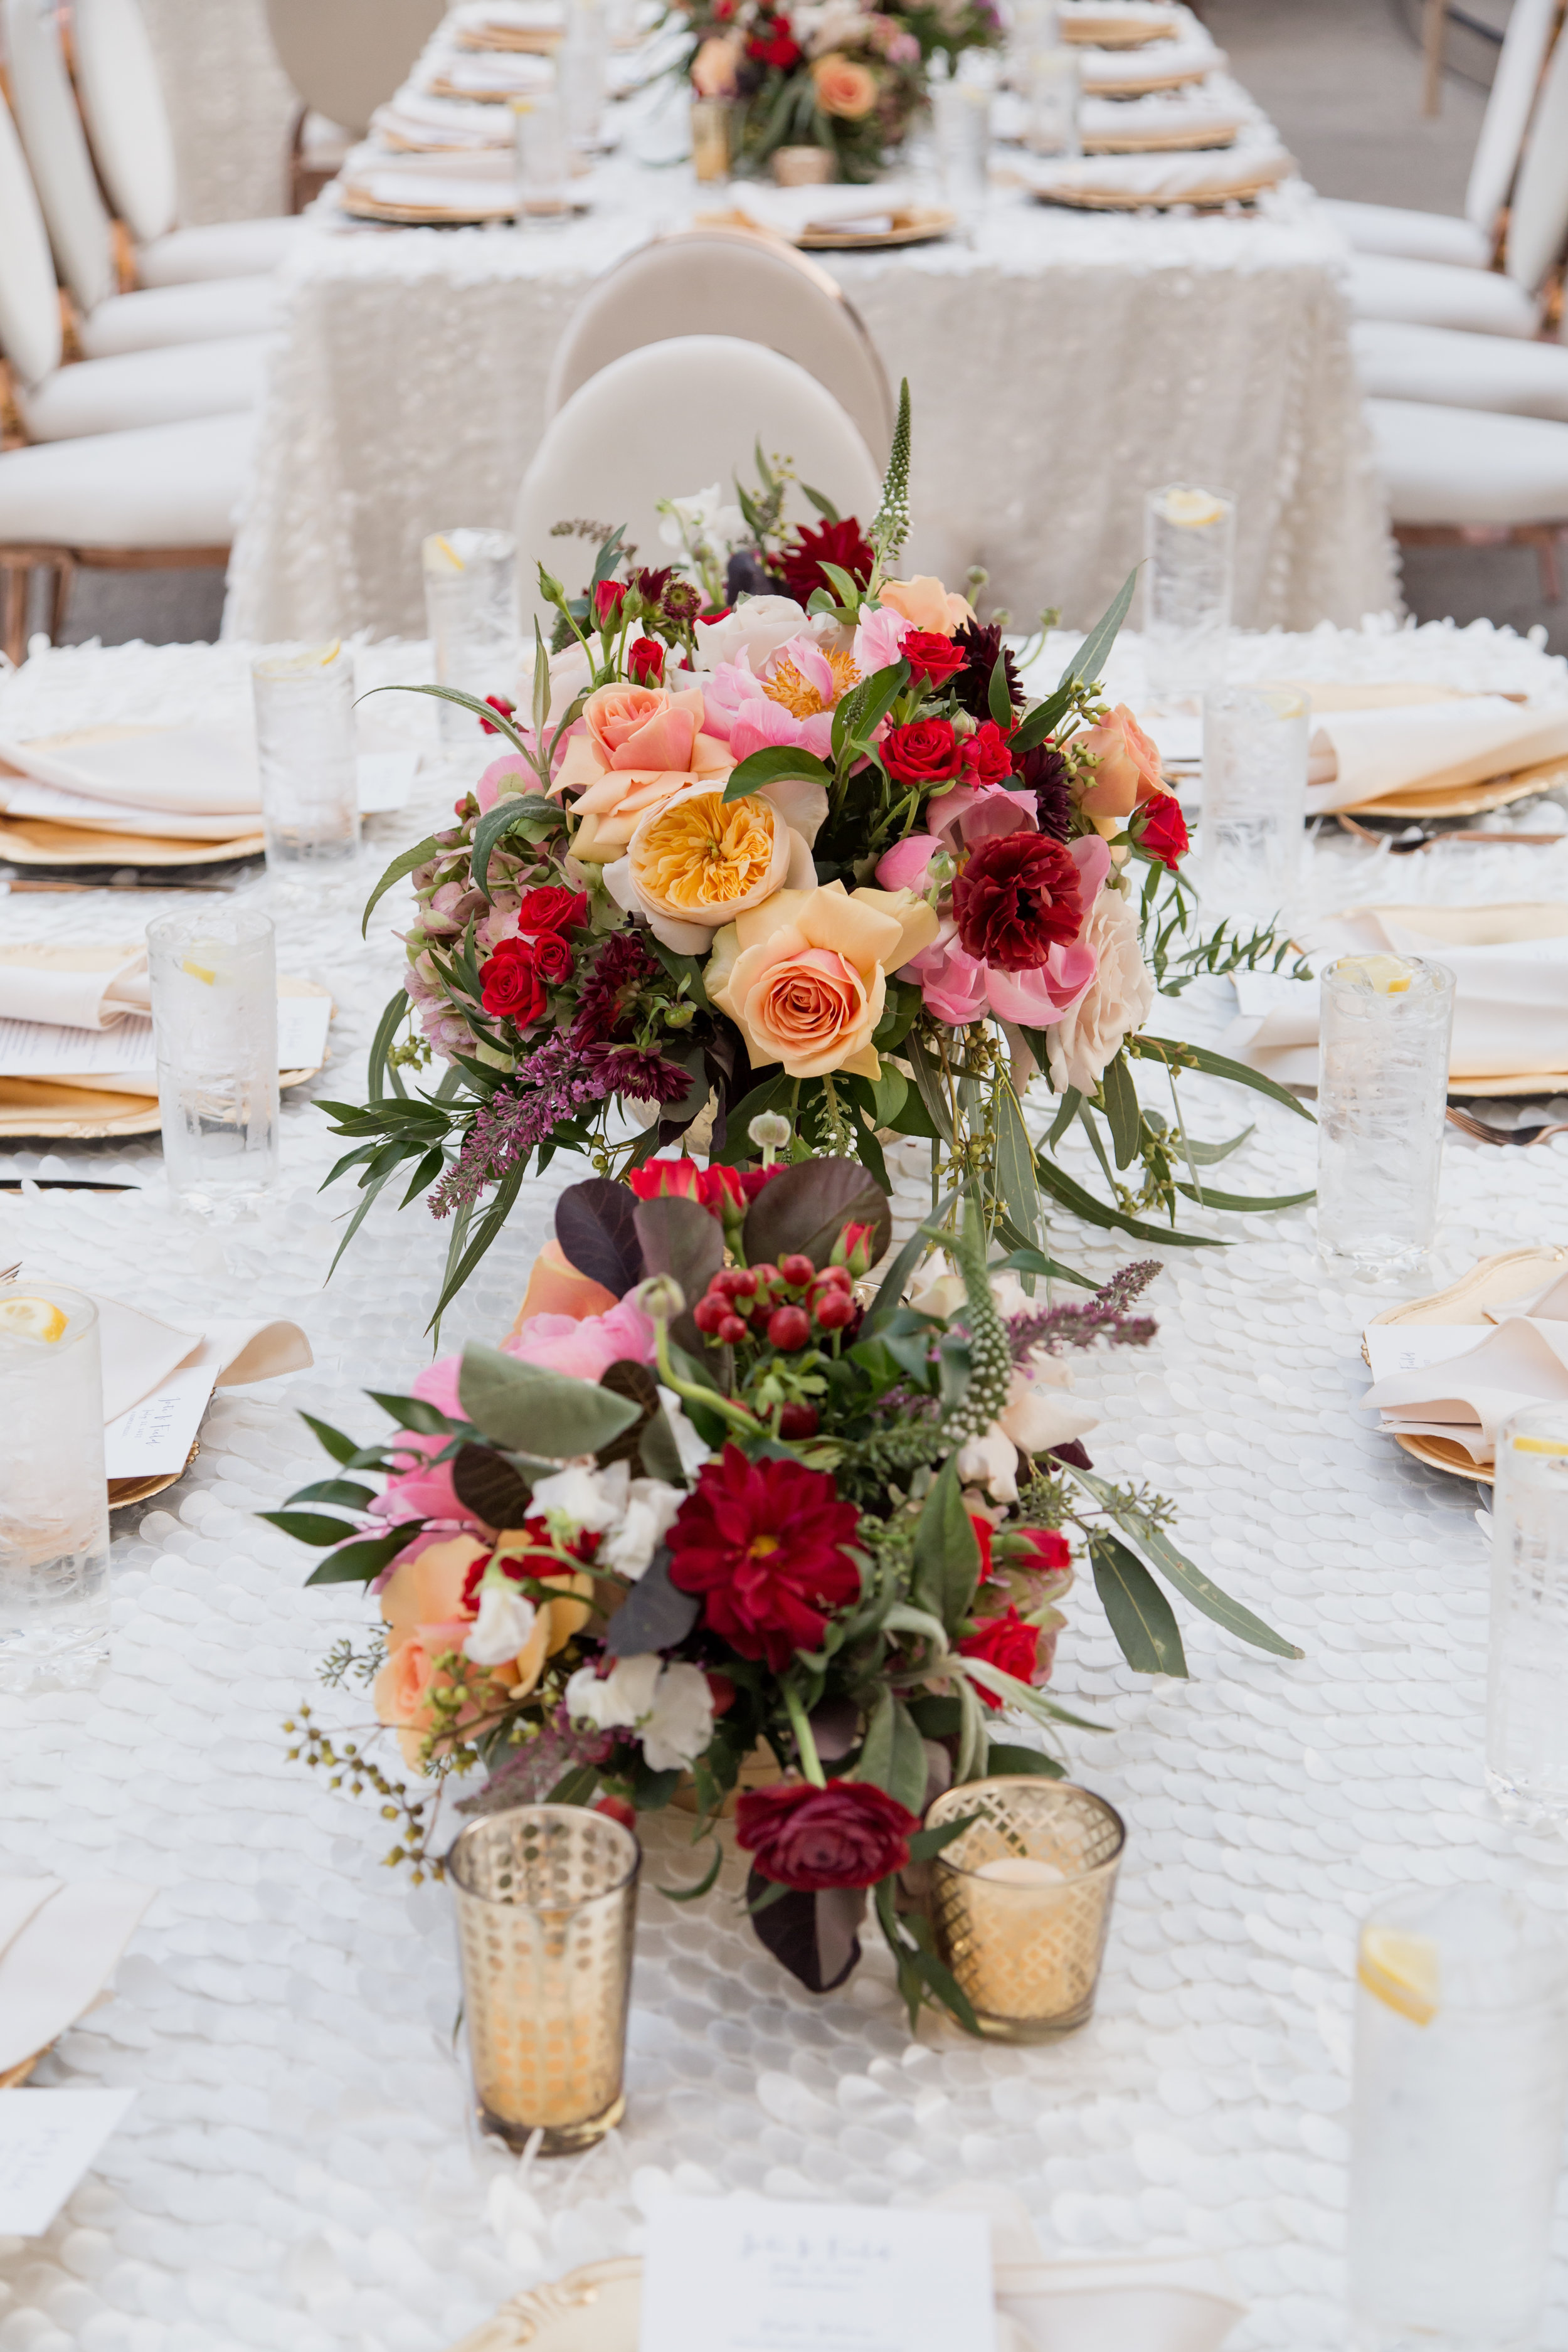 Jewel toned wedding centerpieces with gold votives on white flutter linen.Destination Wedding Planner  Andrea Eppolito ·Photos by  Adam Frazier Photography ·Floral and Decor by  Destinations by Design · Lighting by  LED Unplugged ·Venue · Invitations  Ceci New York  · Menus by  Alligator Soup